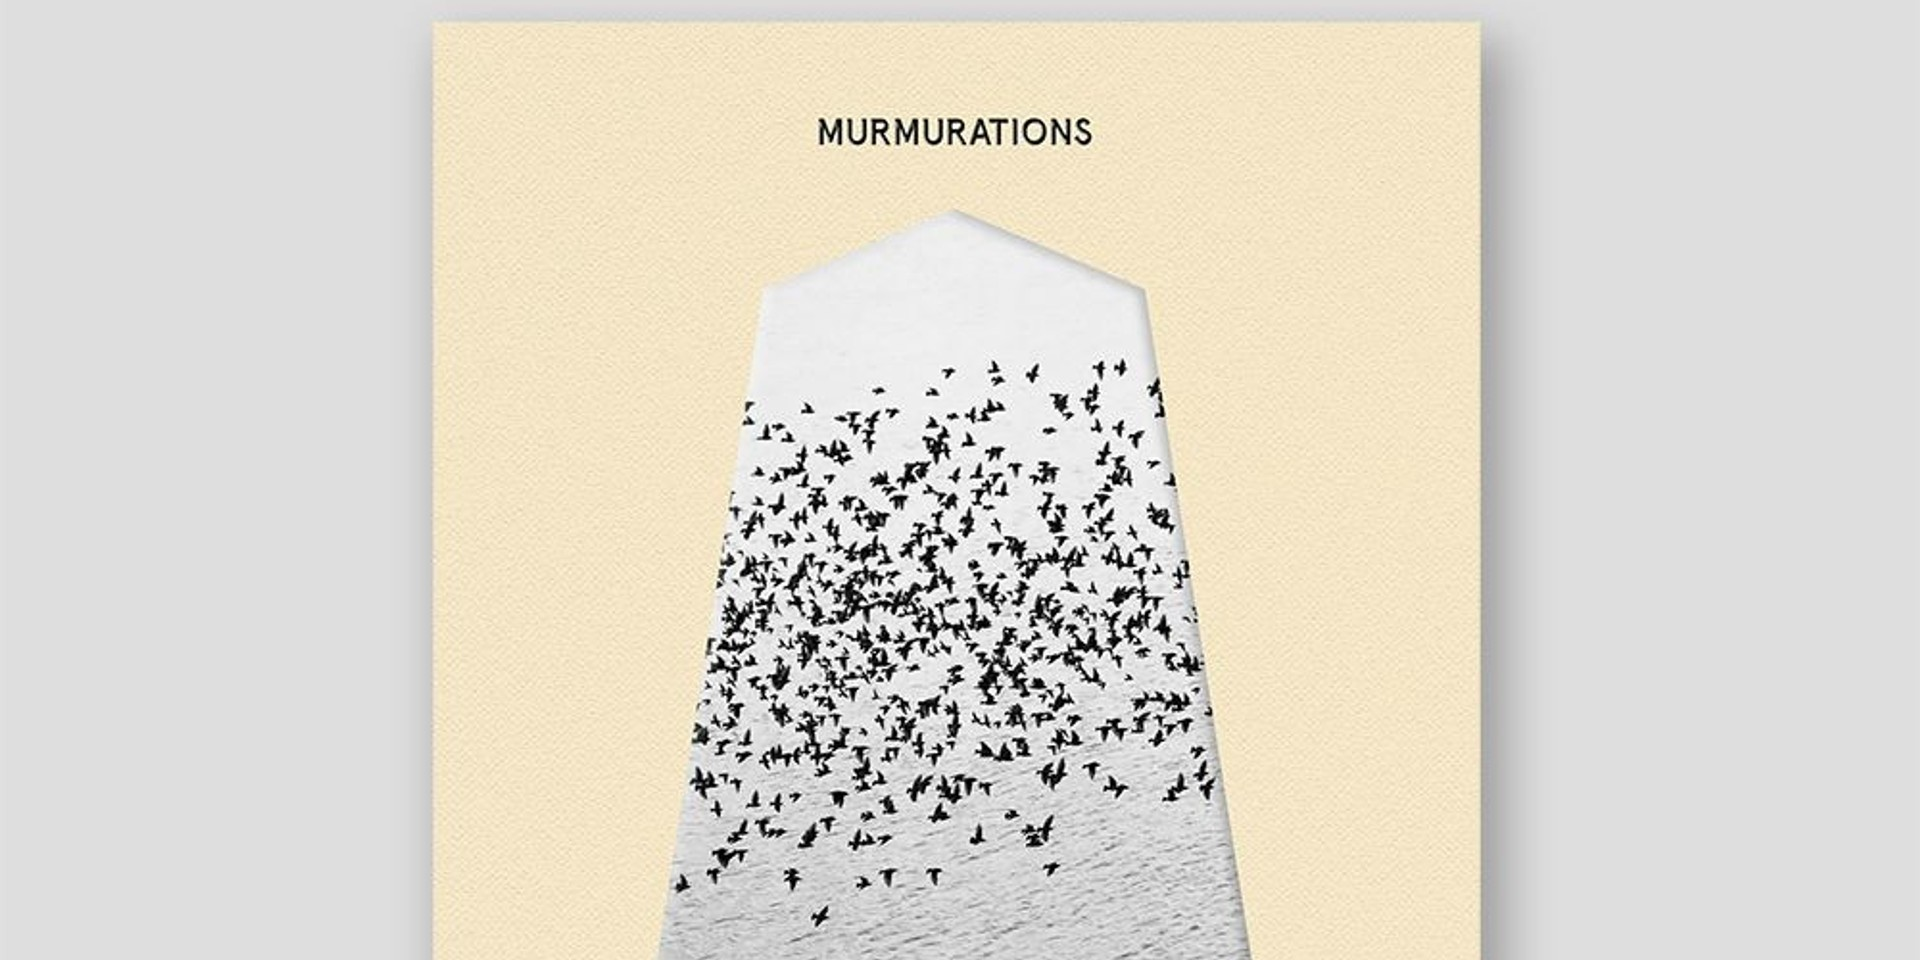 Acclaimed composer sonicbrat to release new acoustic piano album MURMURATIONS on Kitchen. Label